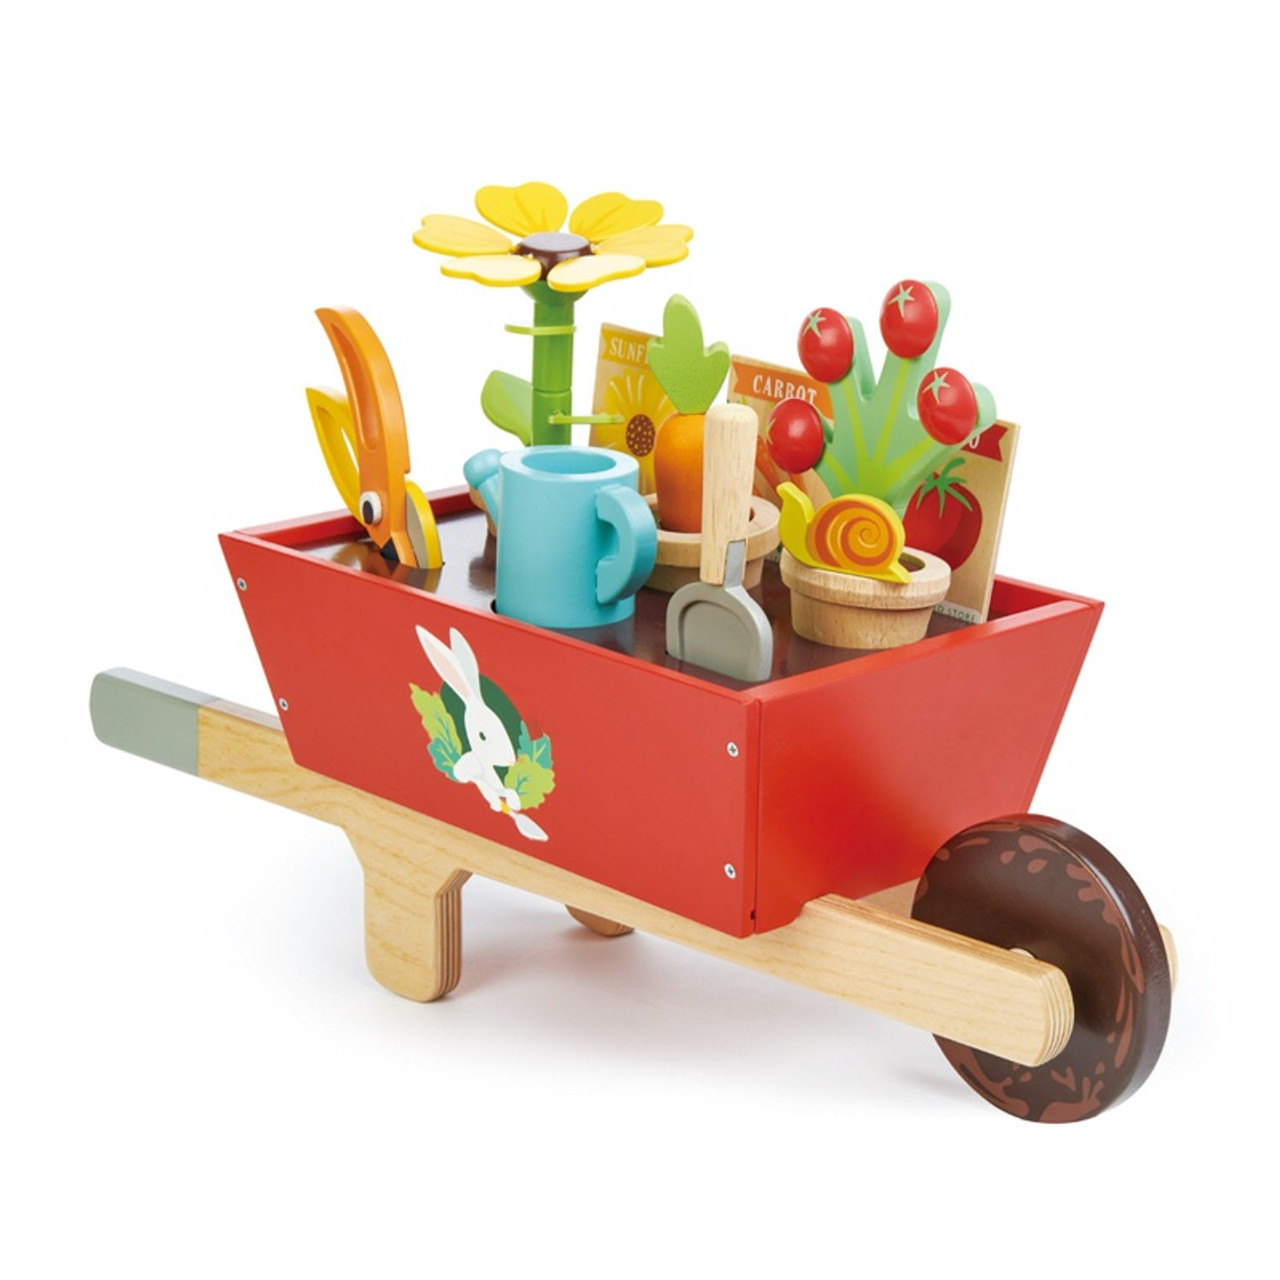 Tender Leaf Toys Garden Wheelbarrow Set at Baby Barn Discounts Tender Leaf Toys garden wheelbarrow is for all the budding gardeners to work on their plants.